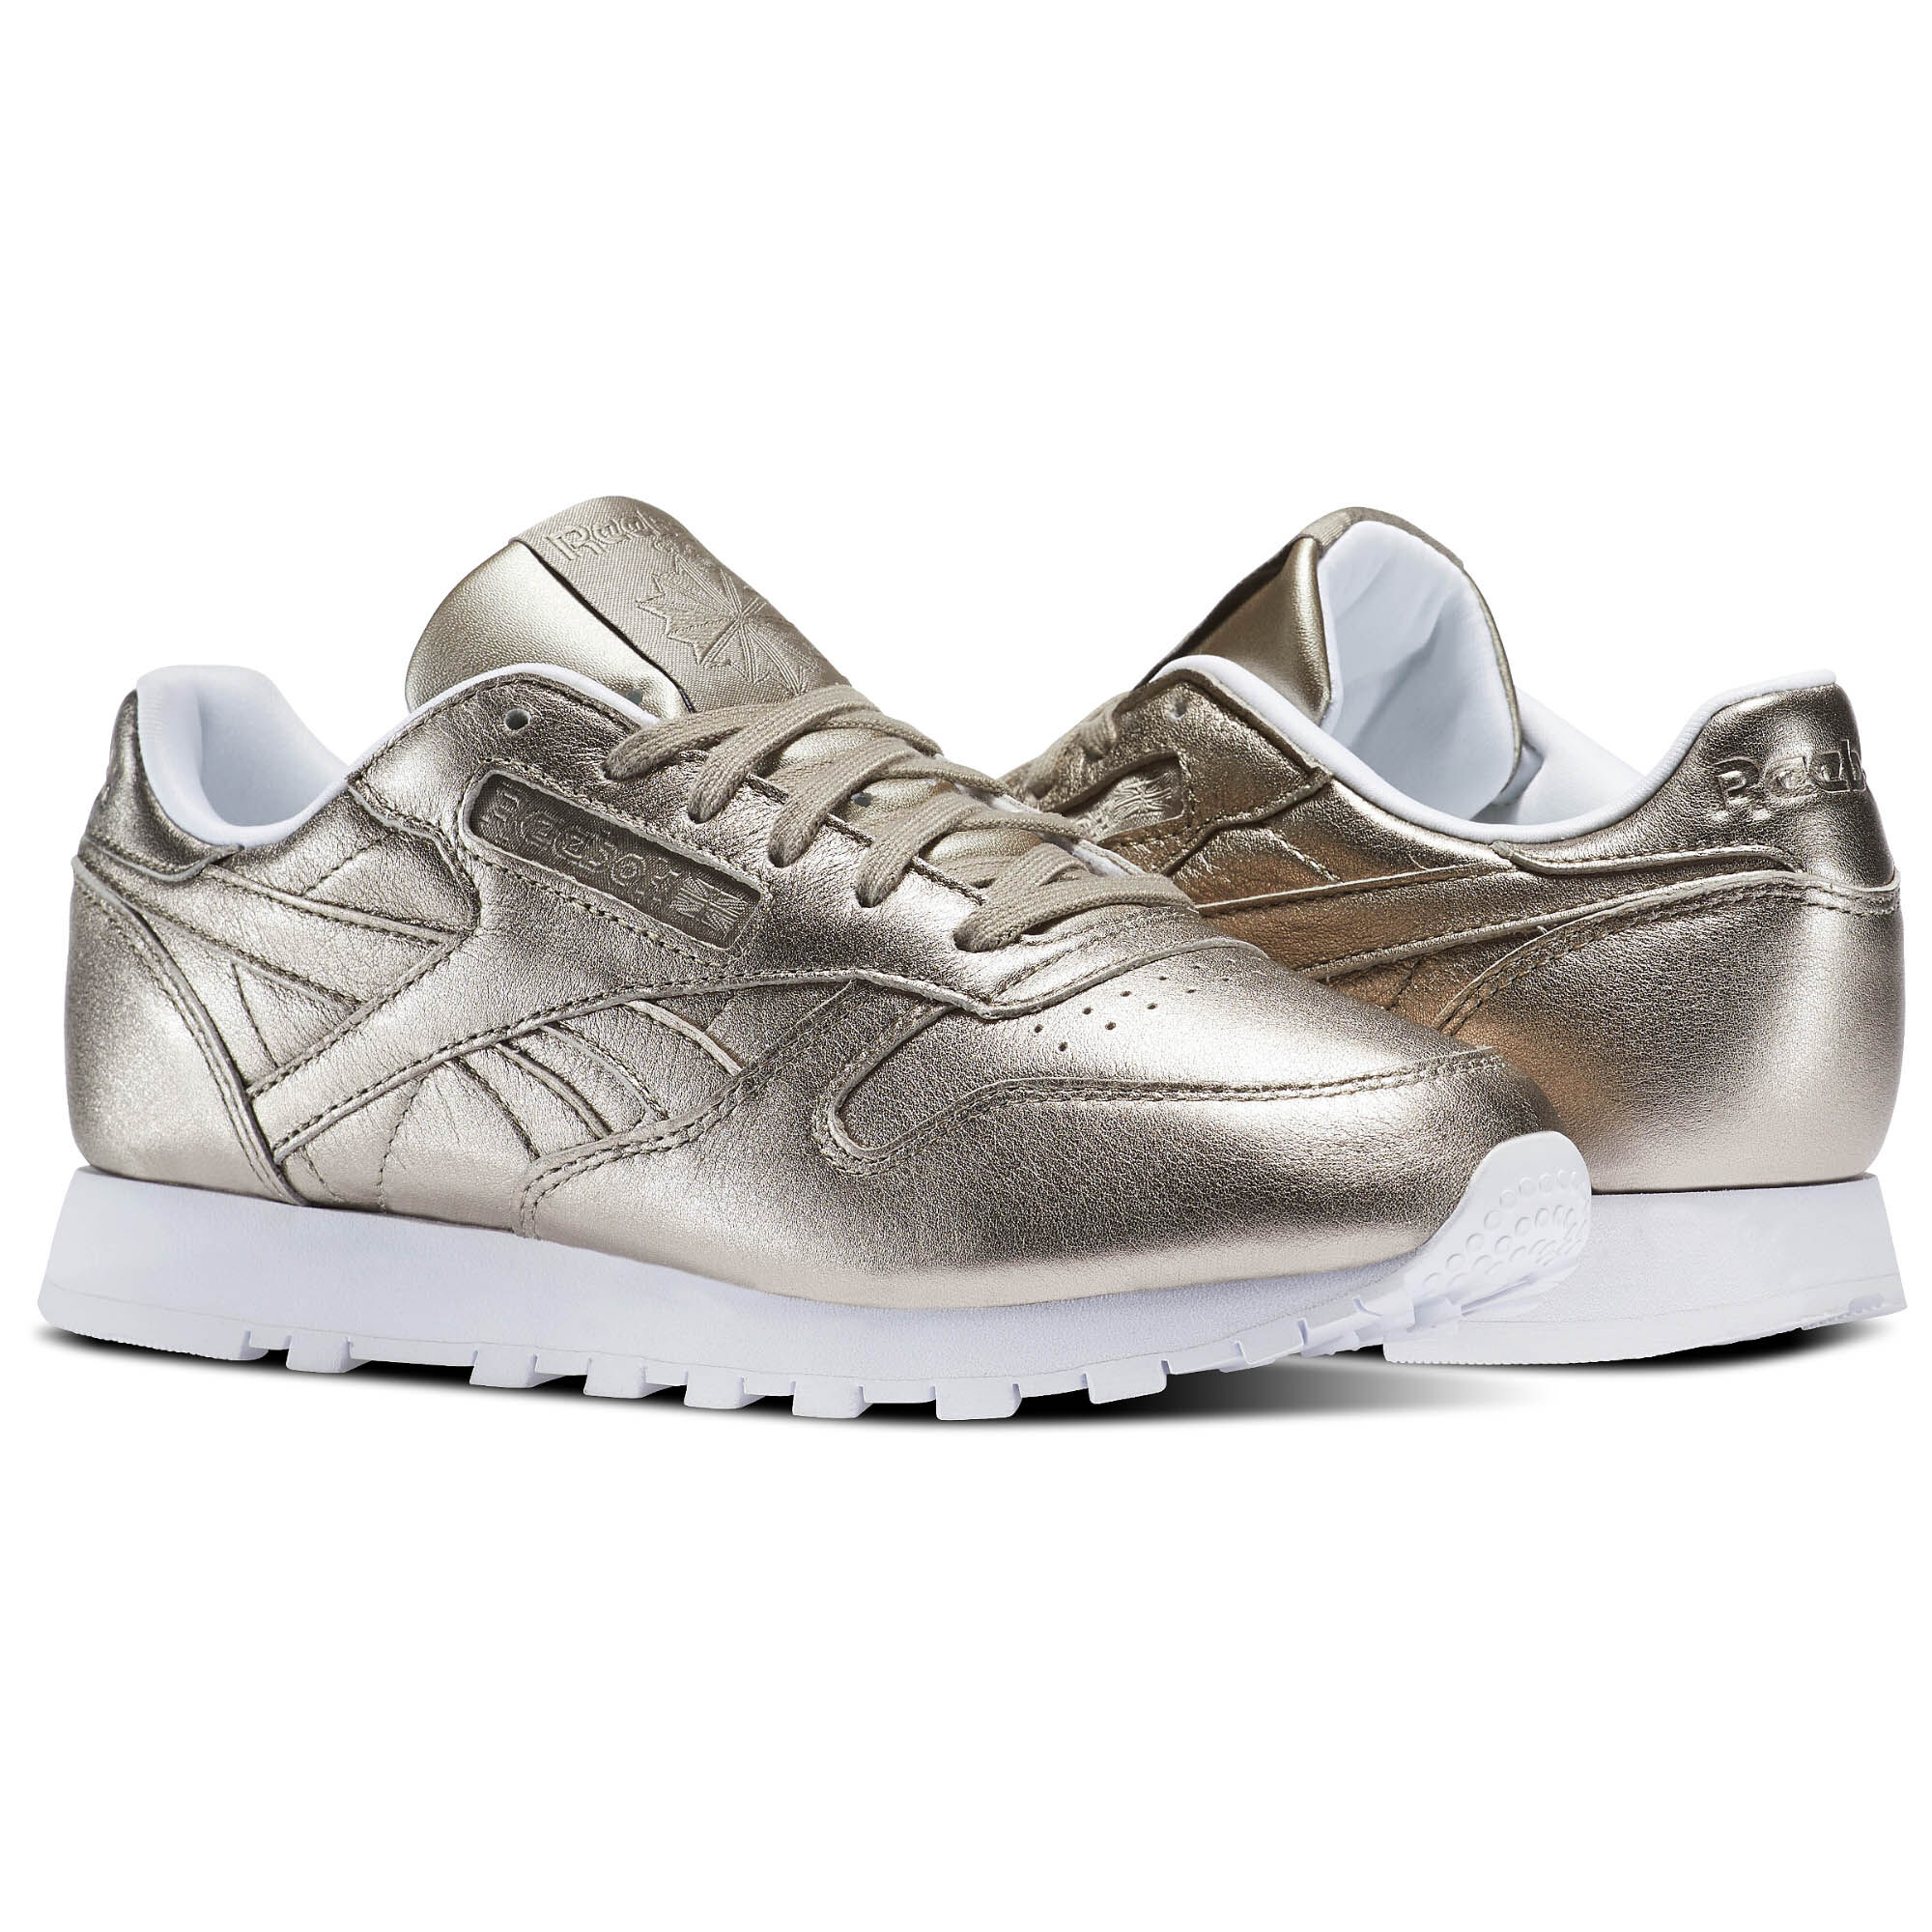 Reebok - Classic Leather Melted Metals Pearl Met-Grey Gold/White BS7898